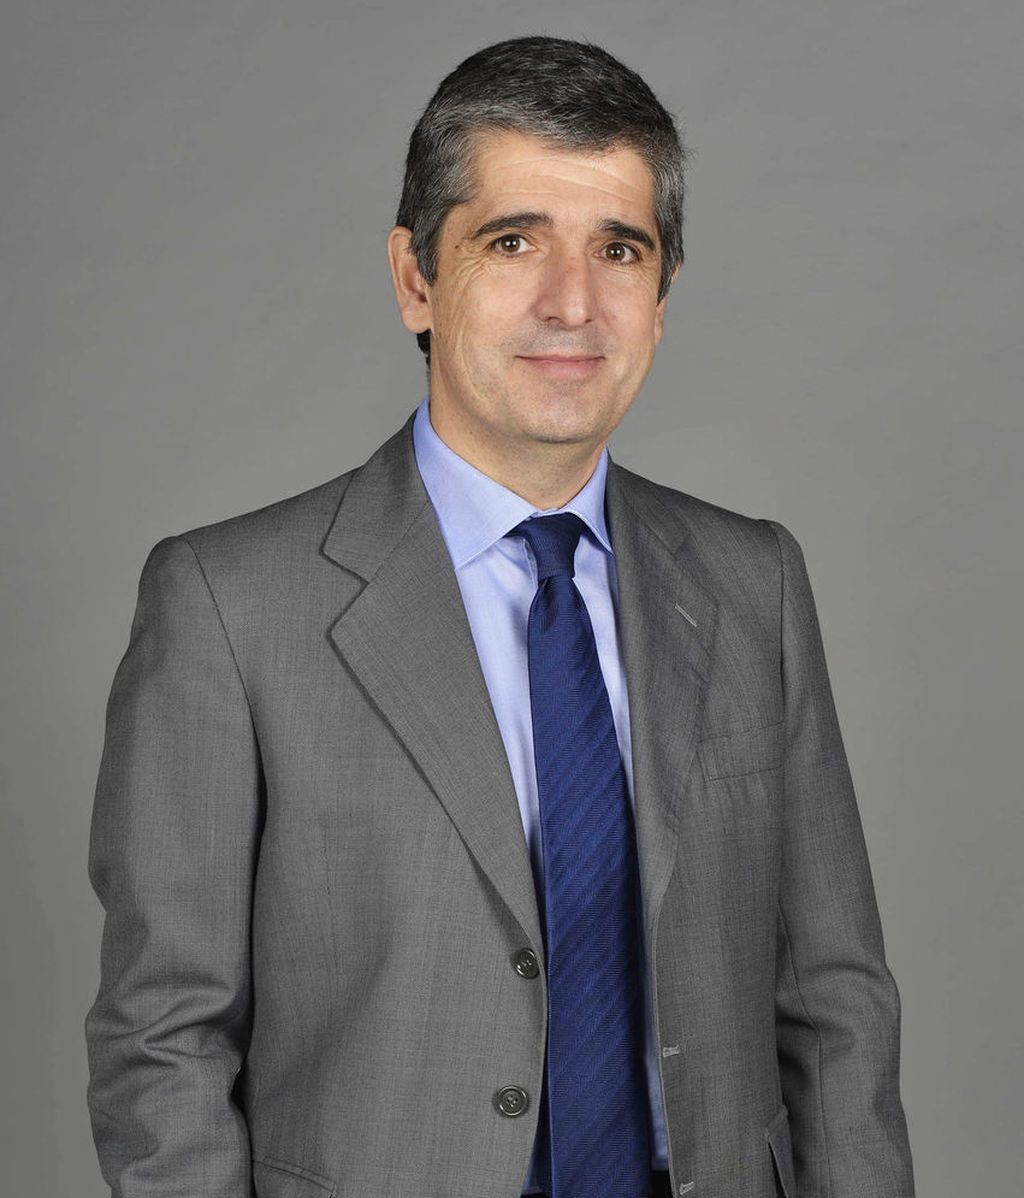 D. FRANCISCO ALUM, Director General